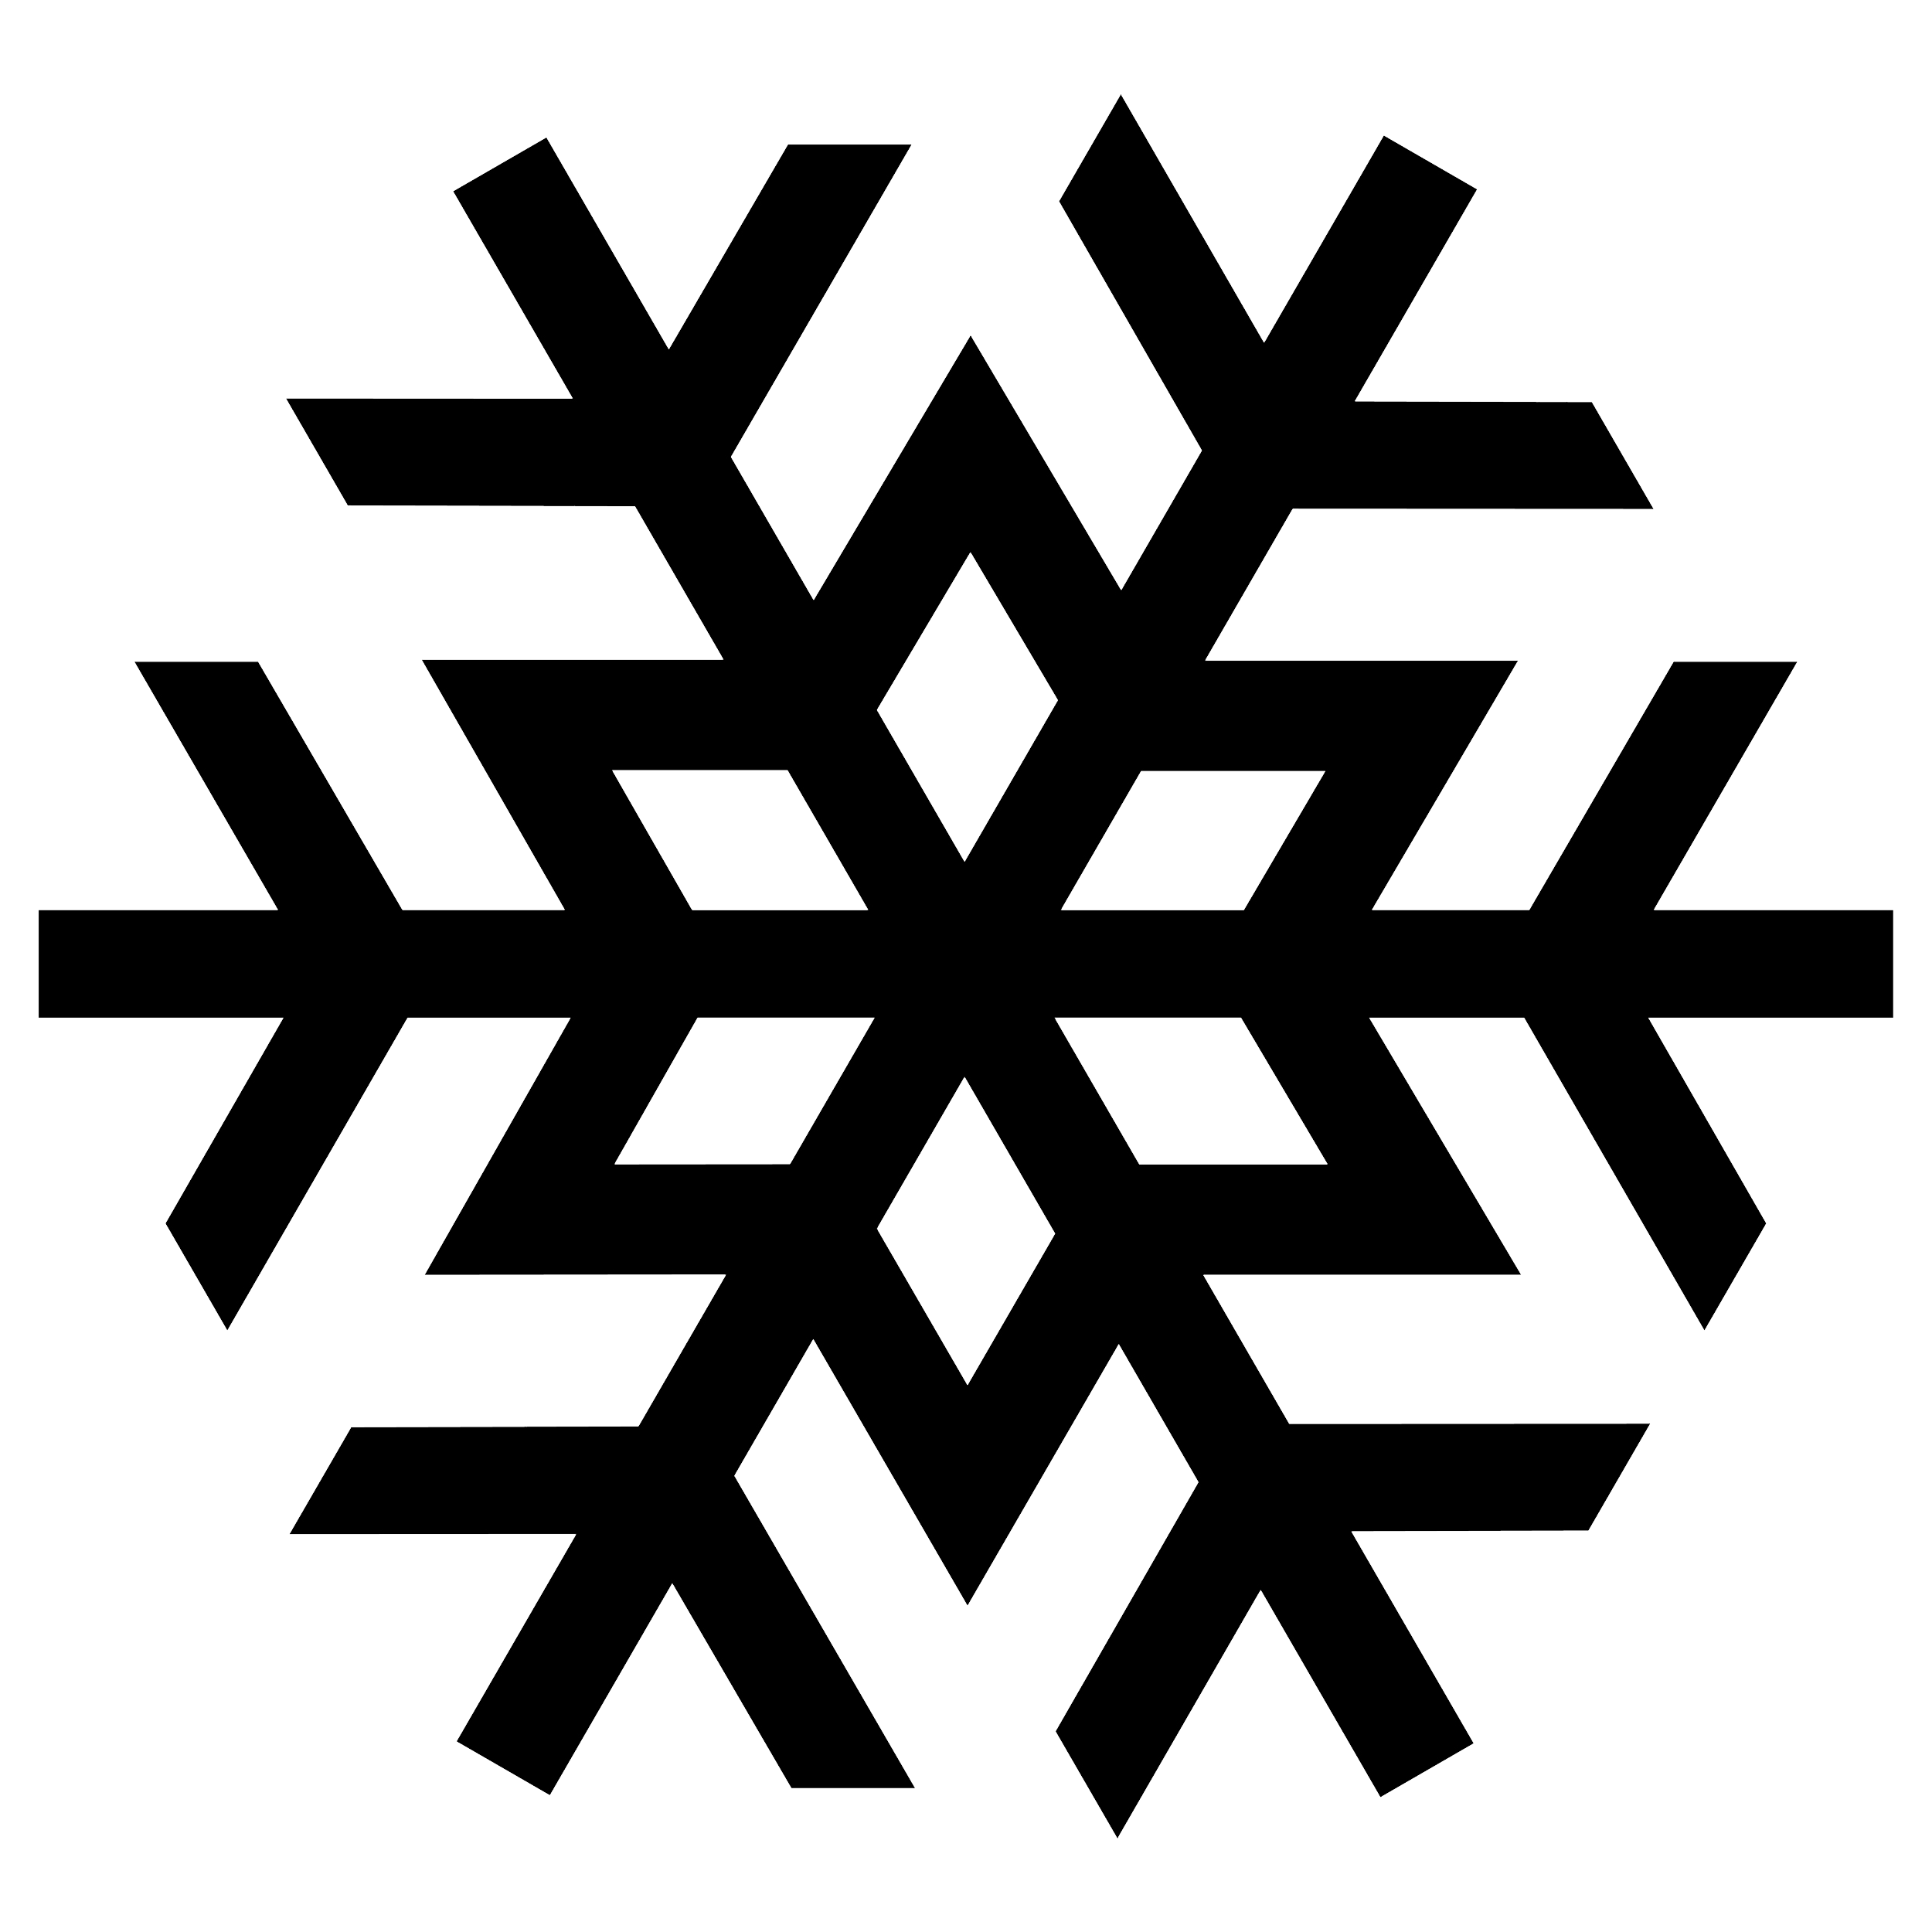 Silhouette png image wzory. Snowflake clipart modern